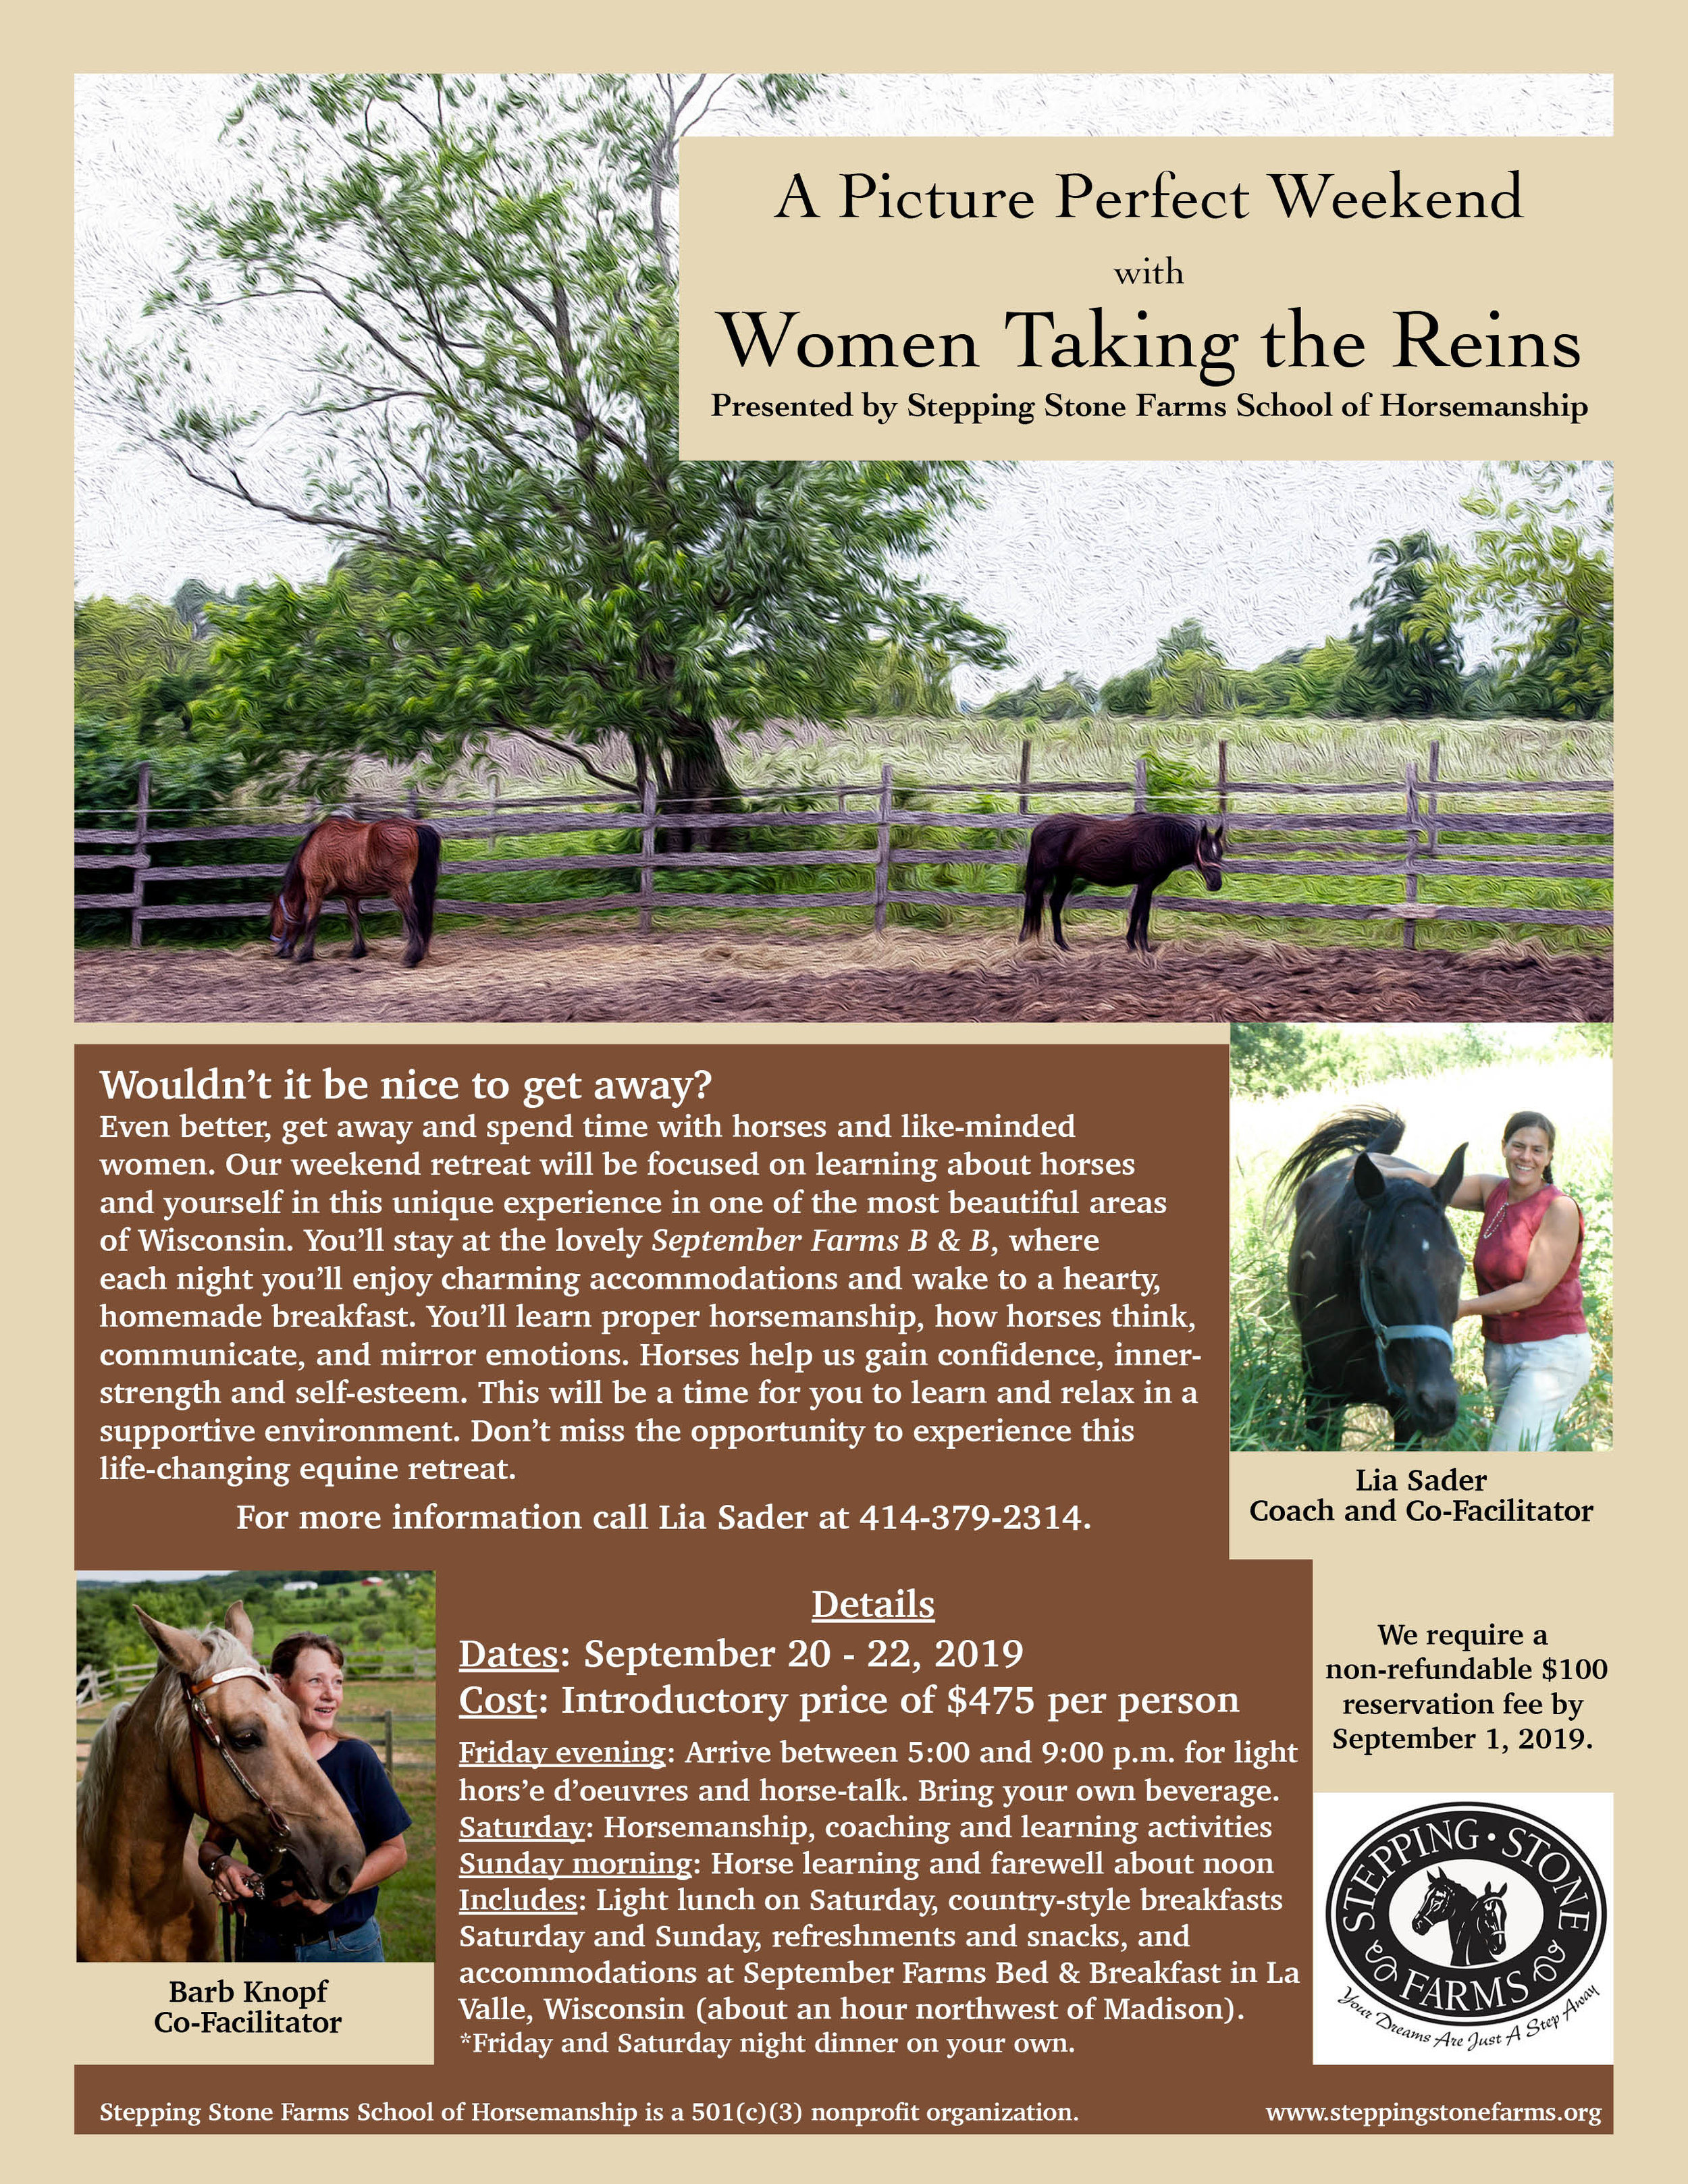 Women Taking the Reins Retreat Flyer